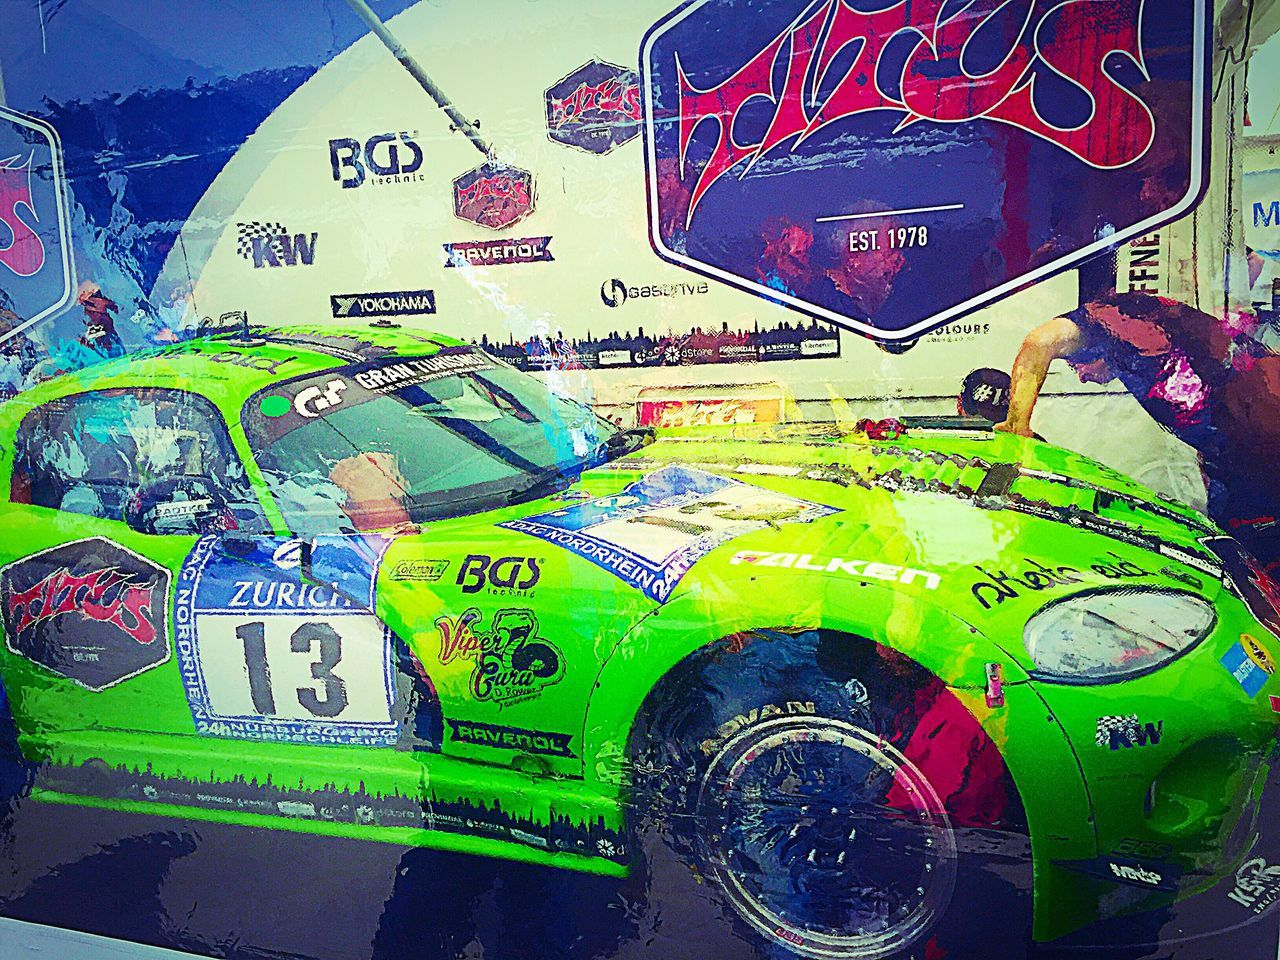 24h Race Nuerburgring Autorennen Racing Car Car Racing IPhone Photography Titus Behindthecurtain Pitstop Green Green Color Eyem Best Shots Eyeemphotography Eyemphotography EyeEm Best Edits EyeEm Best Shots EyeEmBestPics Coulerful EyeEm Gallery Racing Car Boxenstop